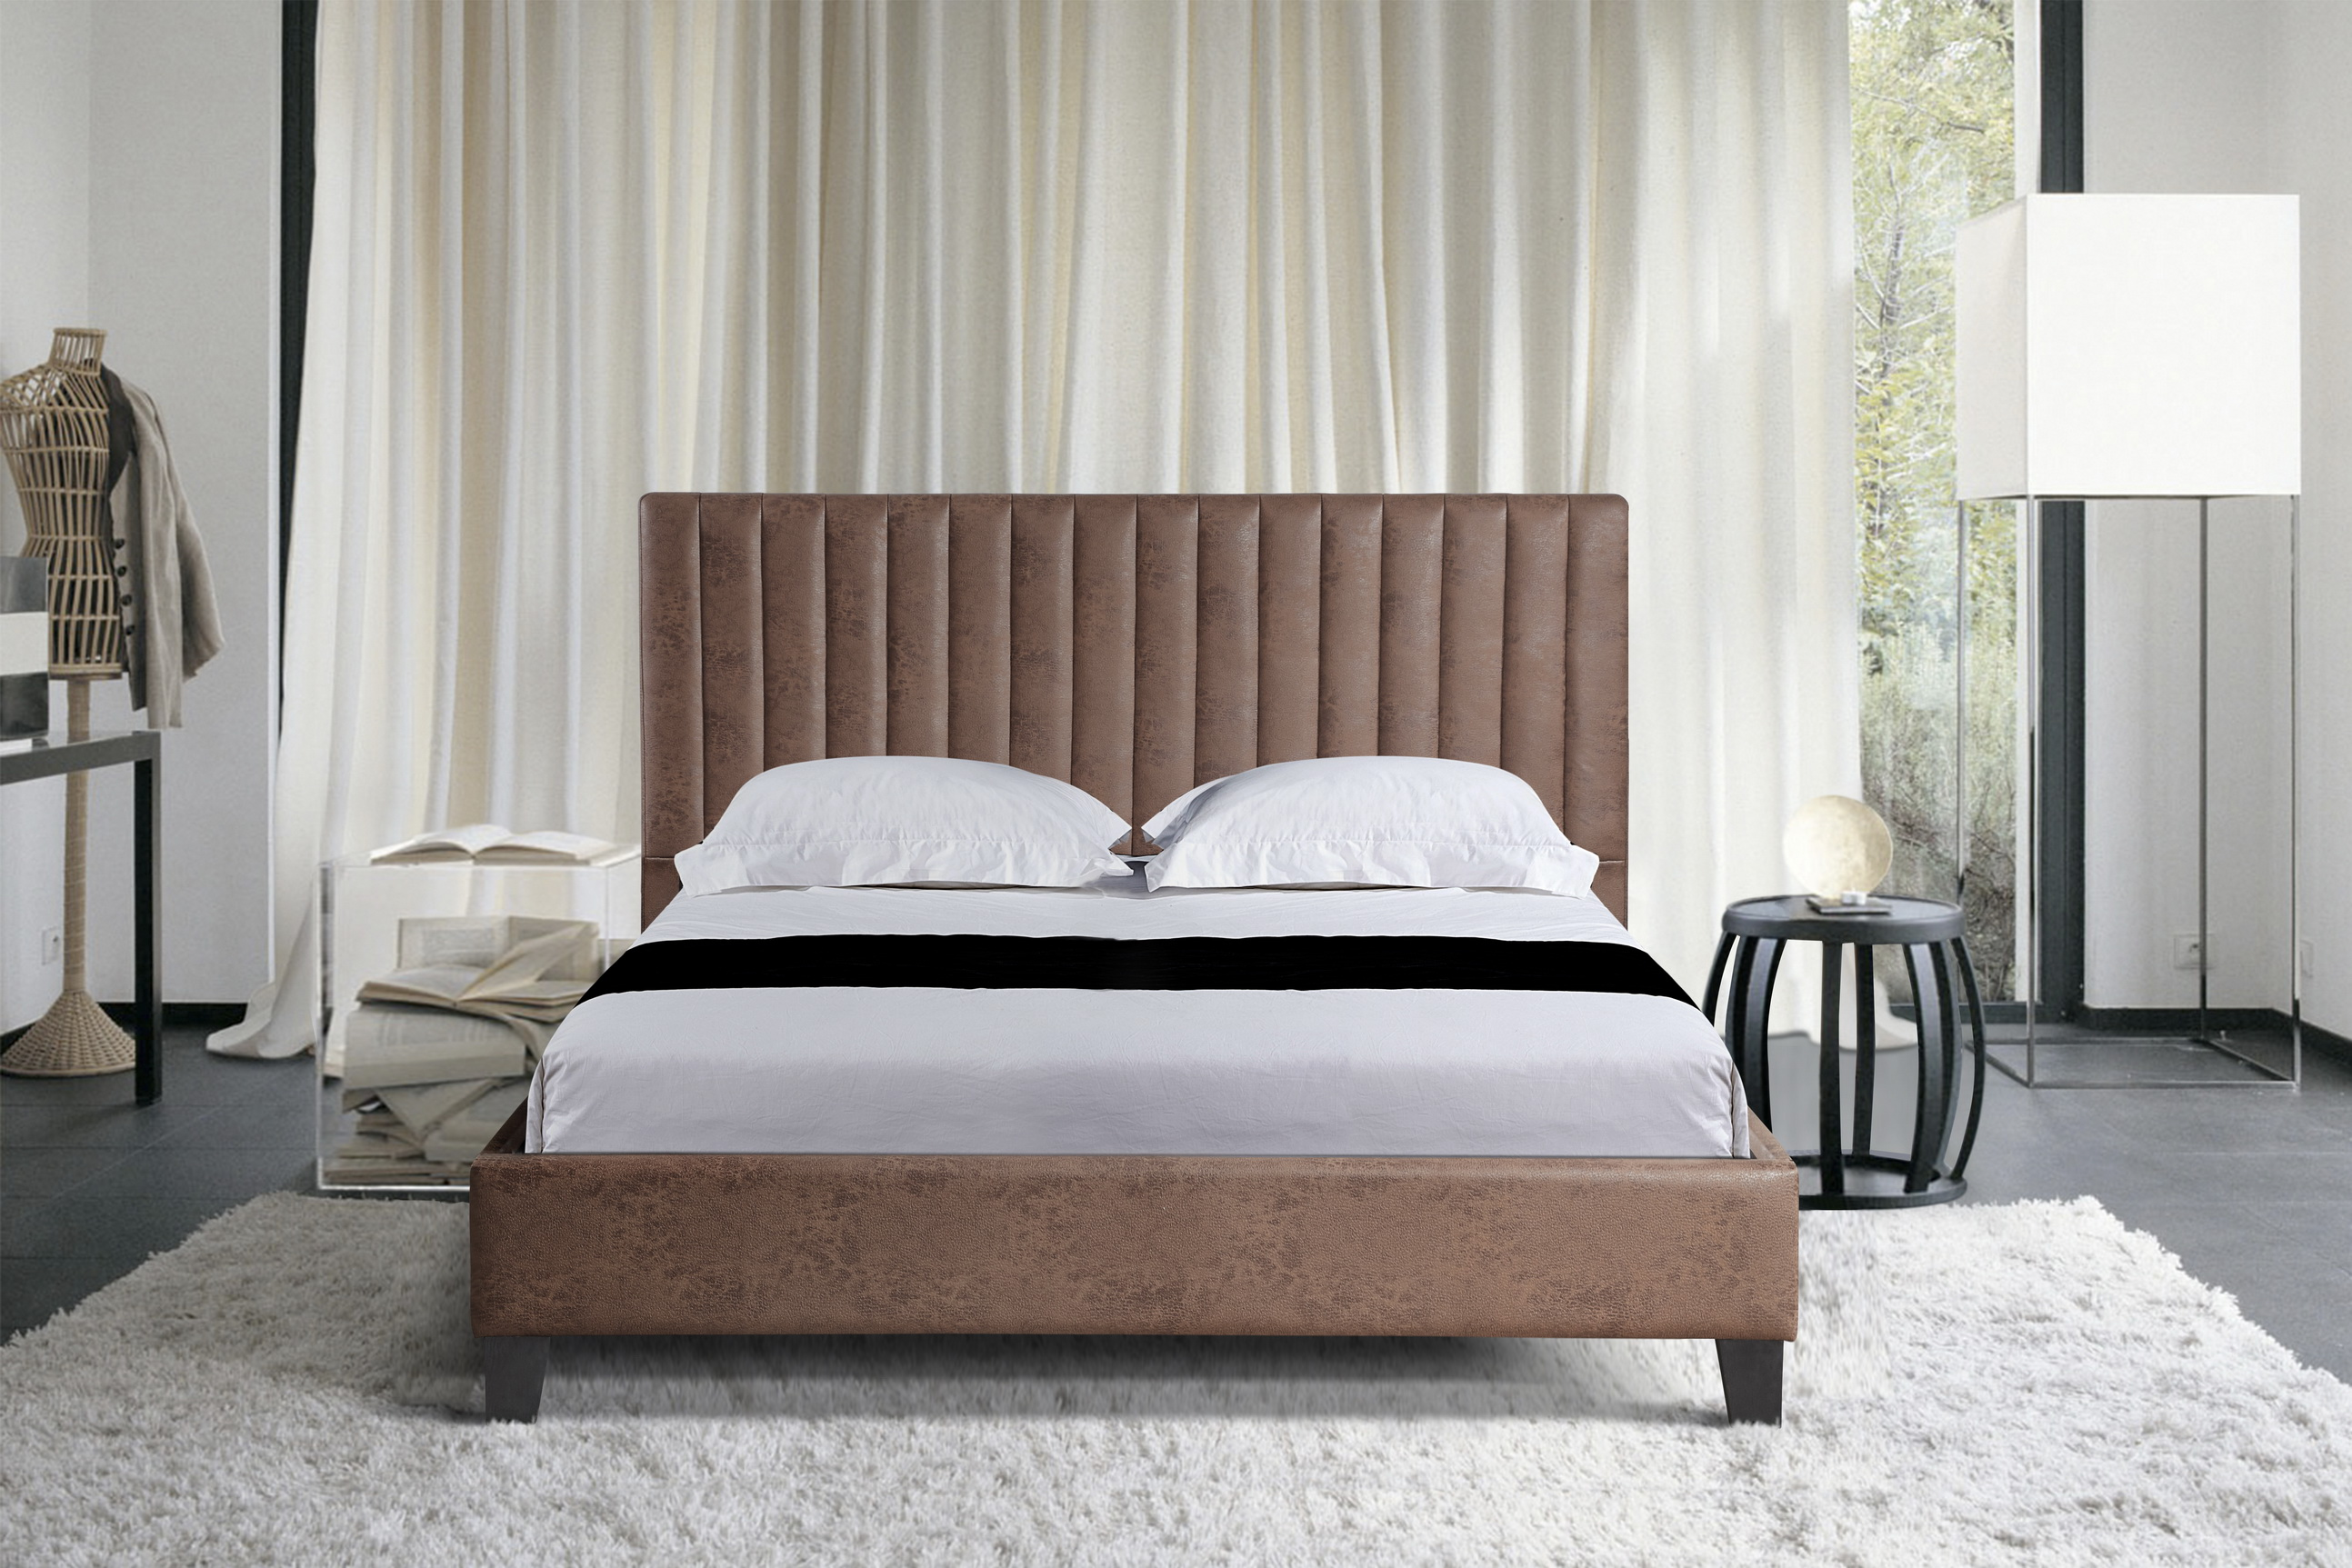 High Quality Commercial Hotel Furniture Queen Size Leather Soft Bed With Tall Headboard Buy Hotel Furniture Queen Size Bed Soft Bed With Headboard Product On Alibaba Com